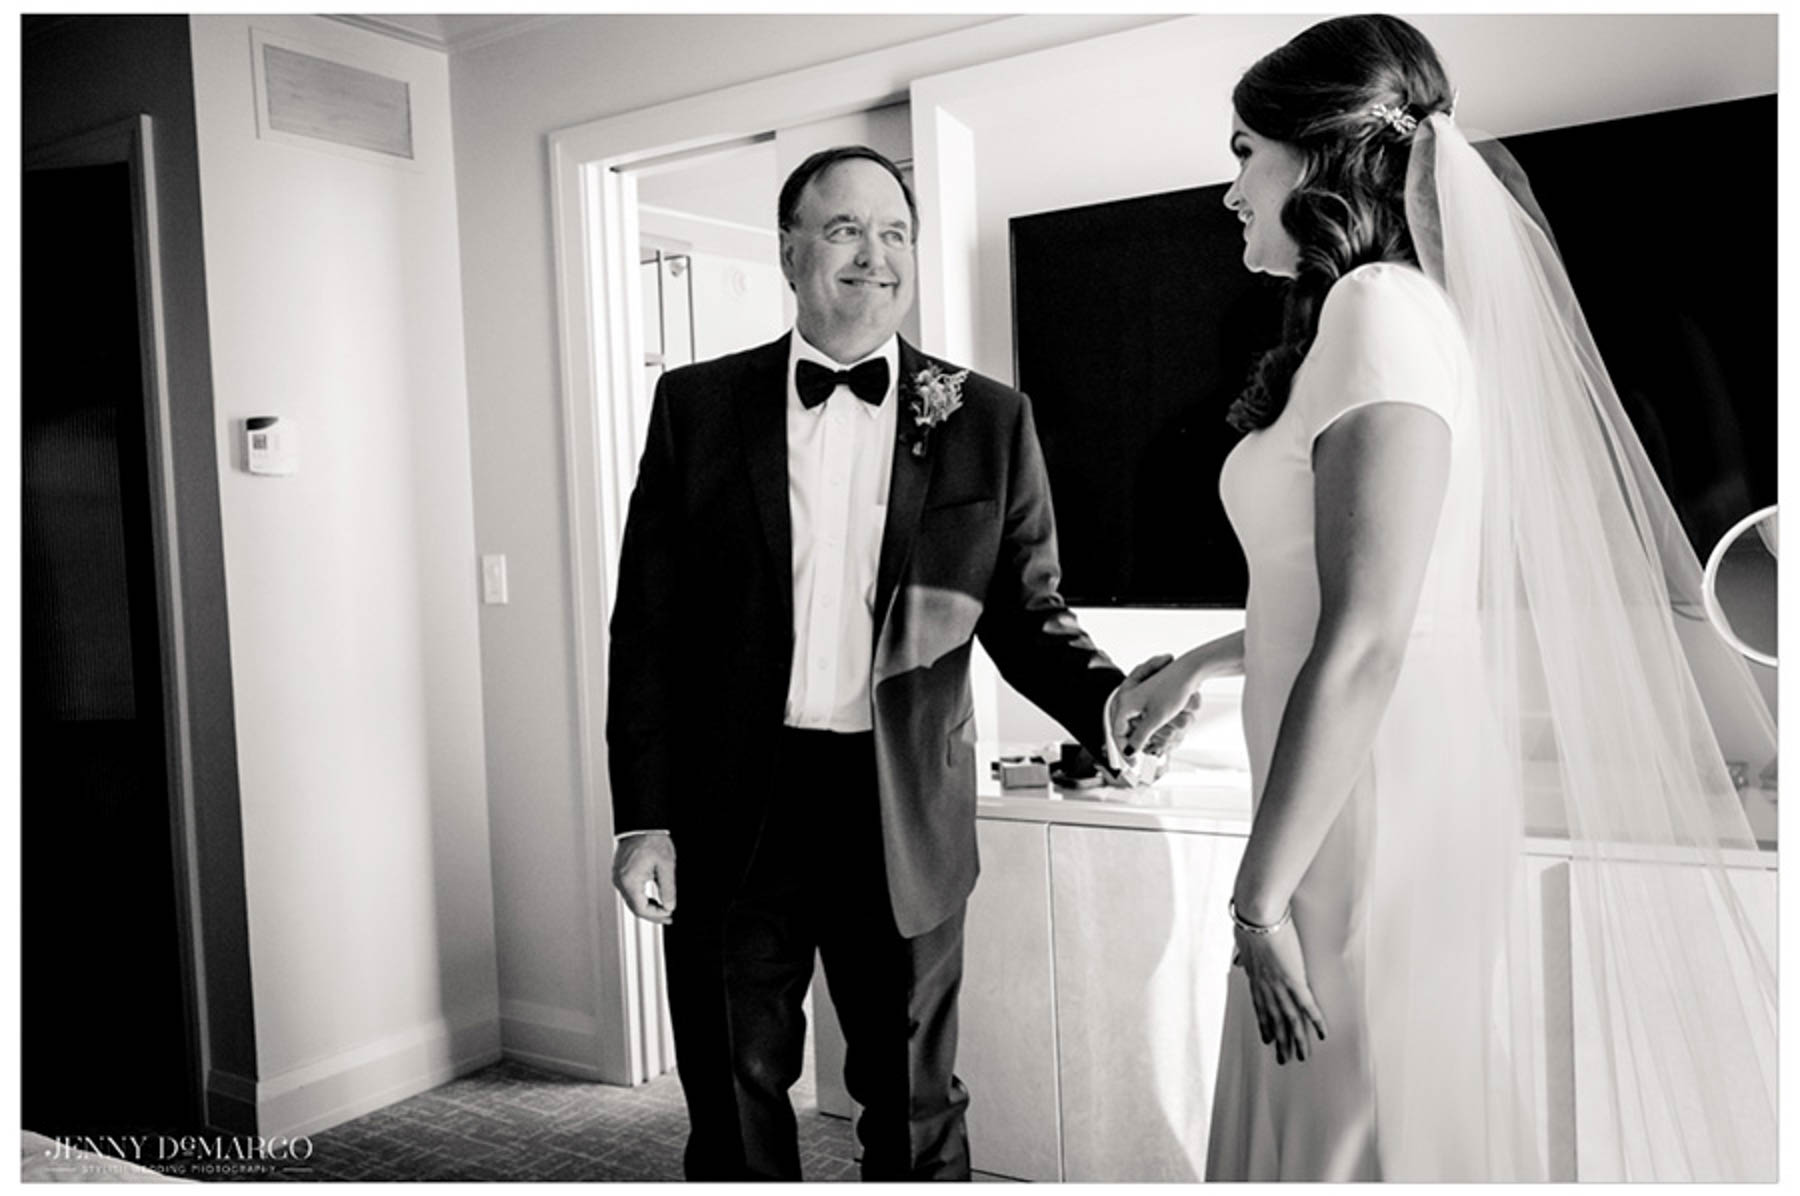 father of bride takes first look at bride in her dress